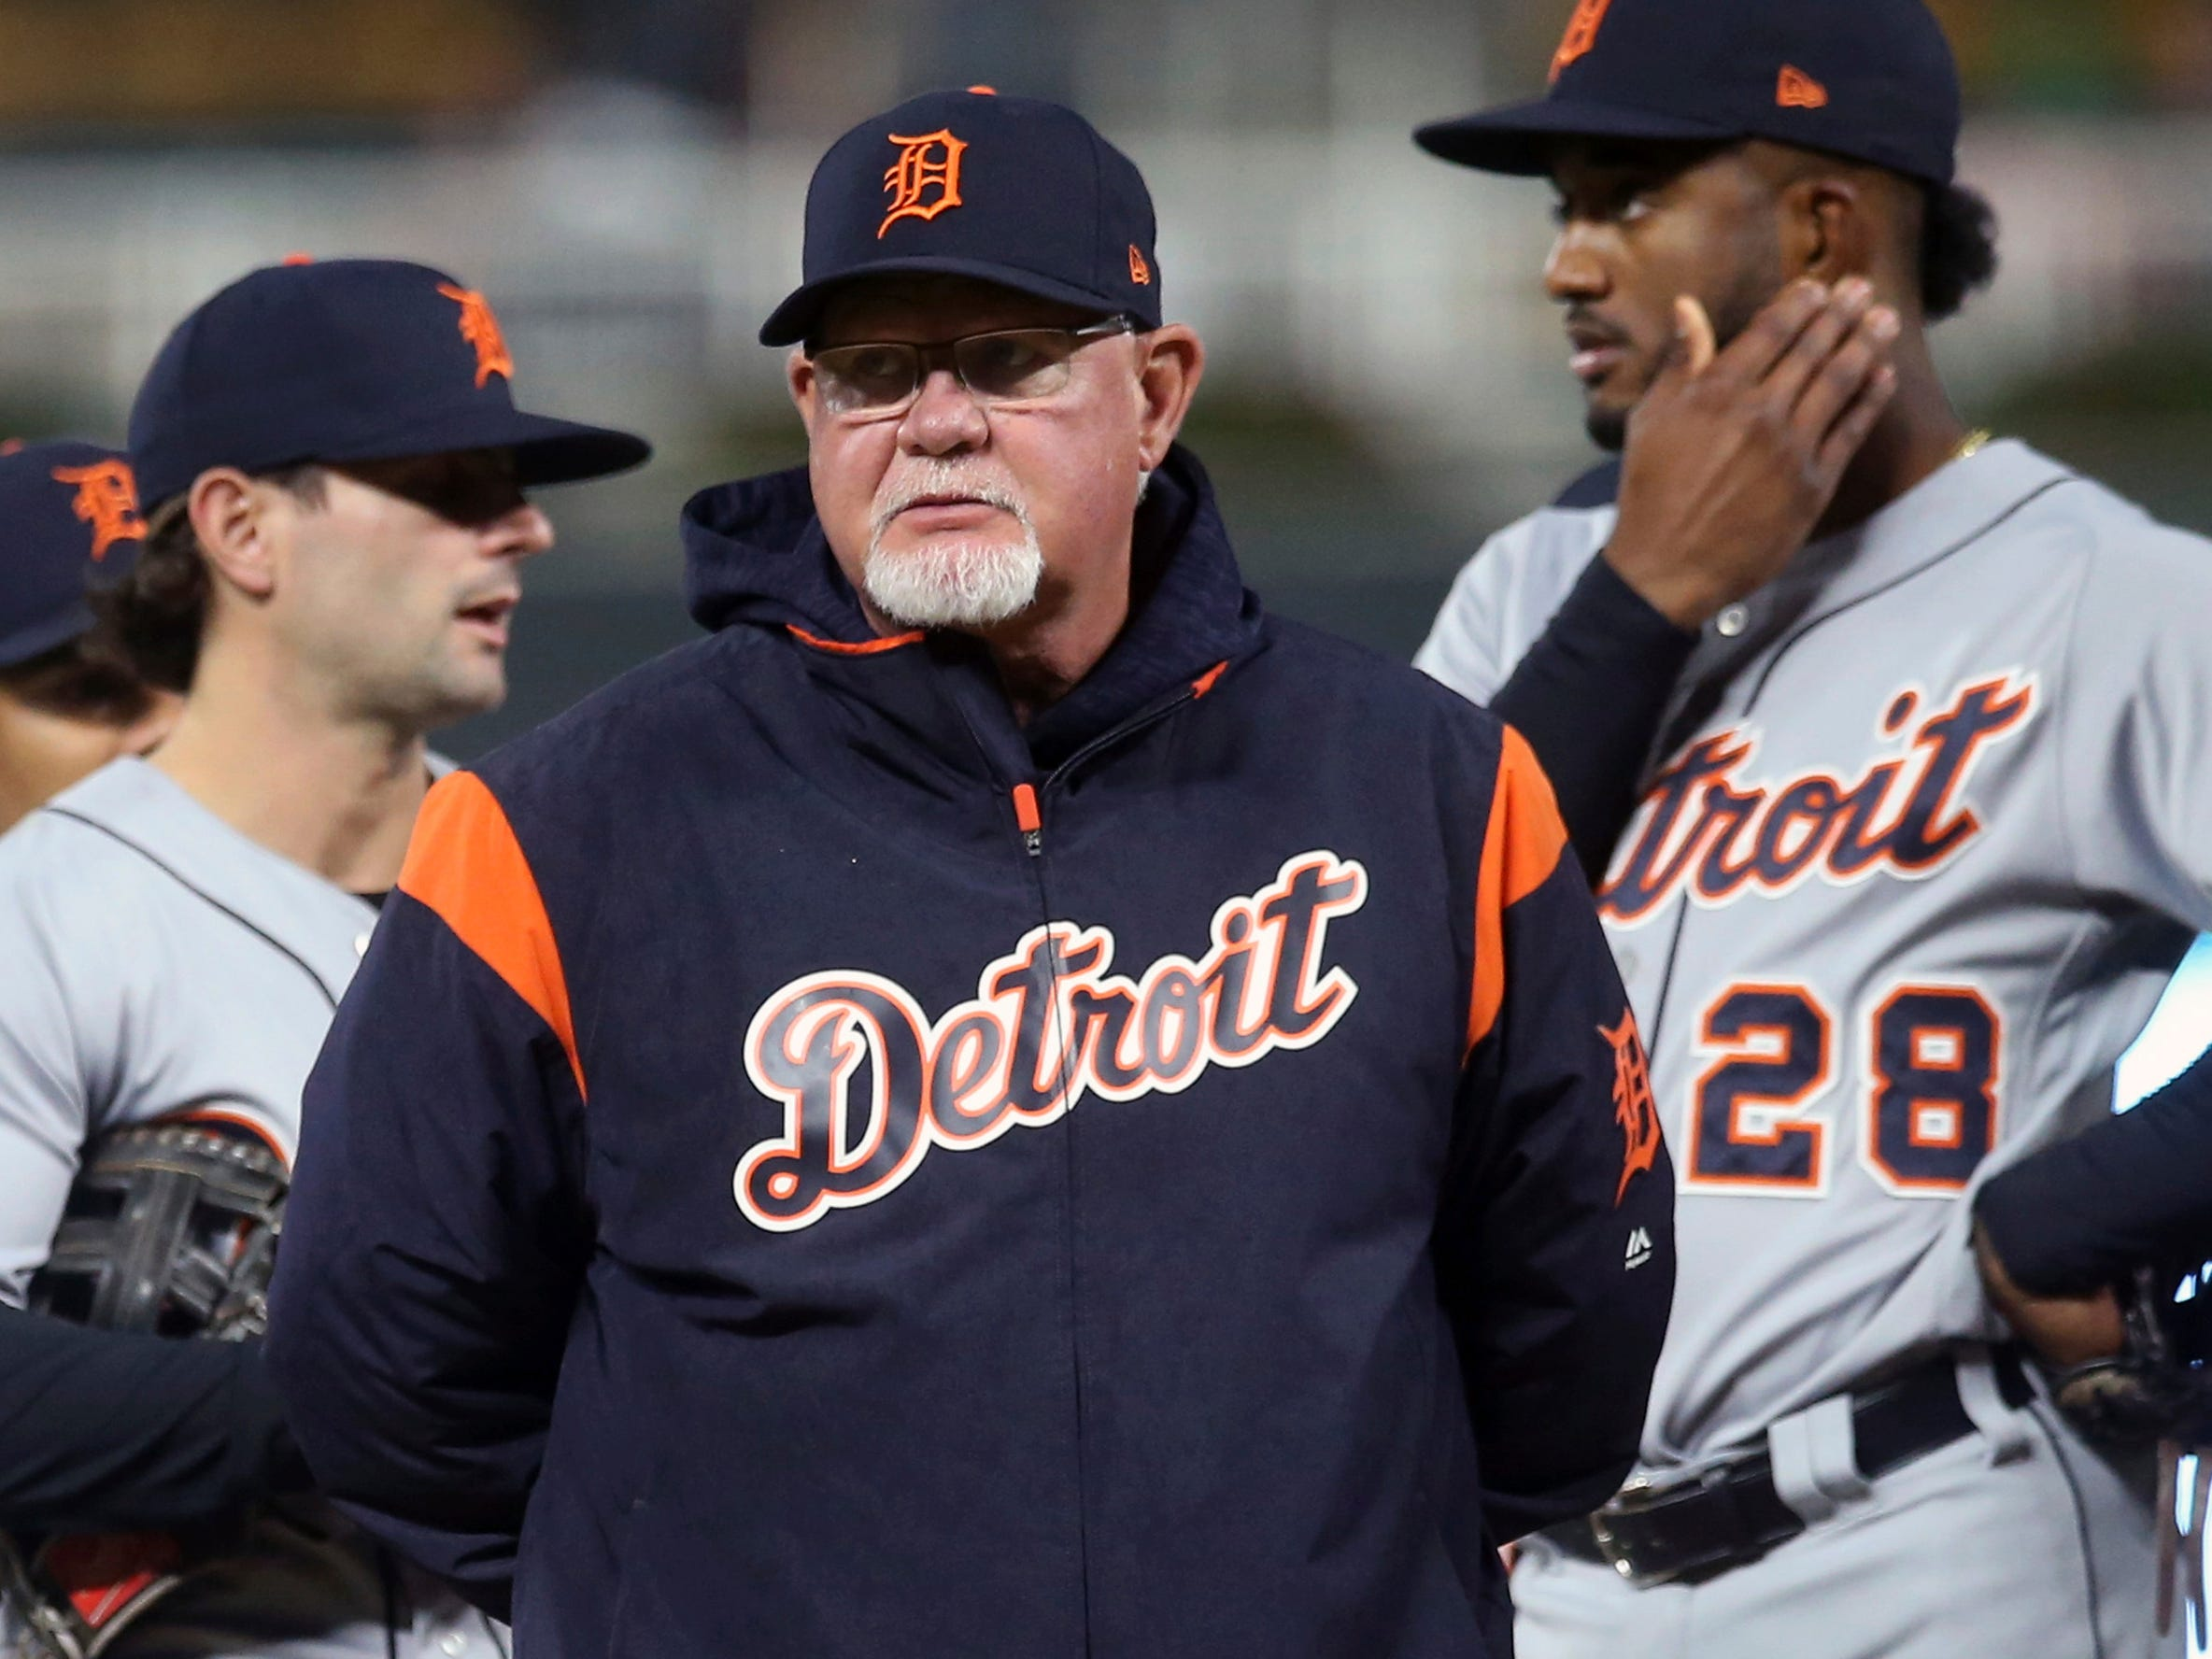 Detroit Tigers manager Ron Gardenhire watches as pitcher Francisco Liriano leaves the game in the third inning against the Minnesota Twins, Thursday, Sept. 27, 2018, in Minneapolis.